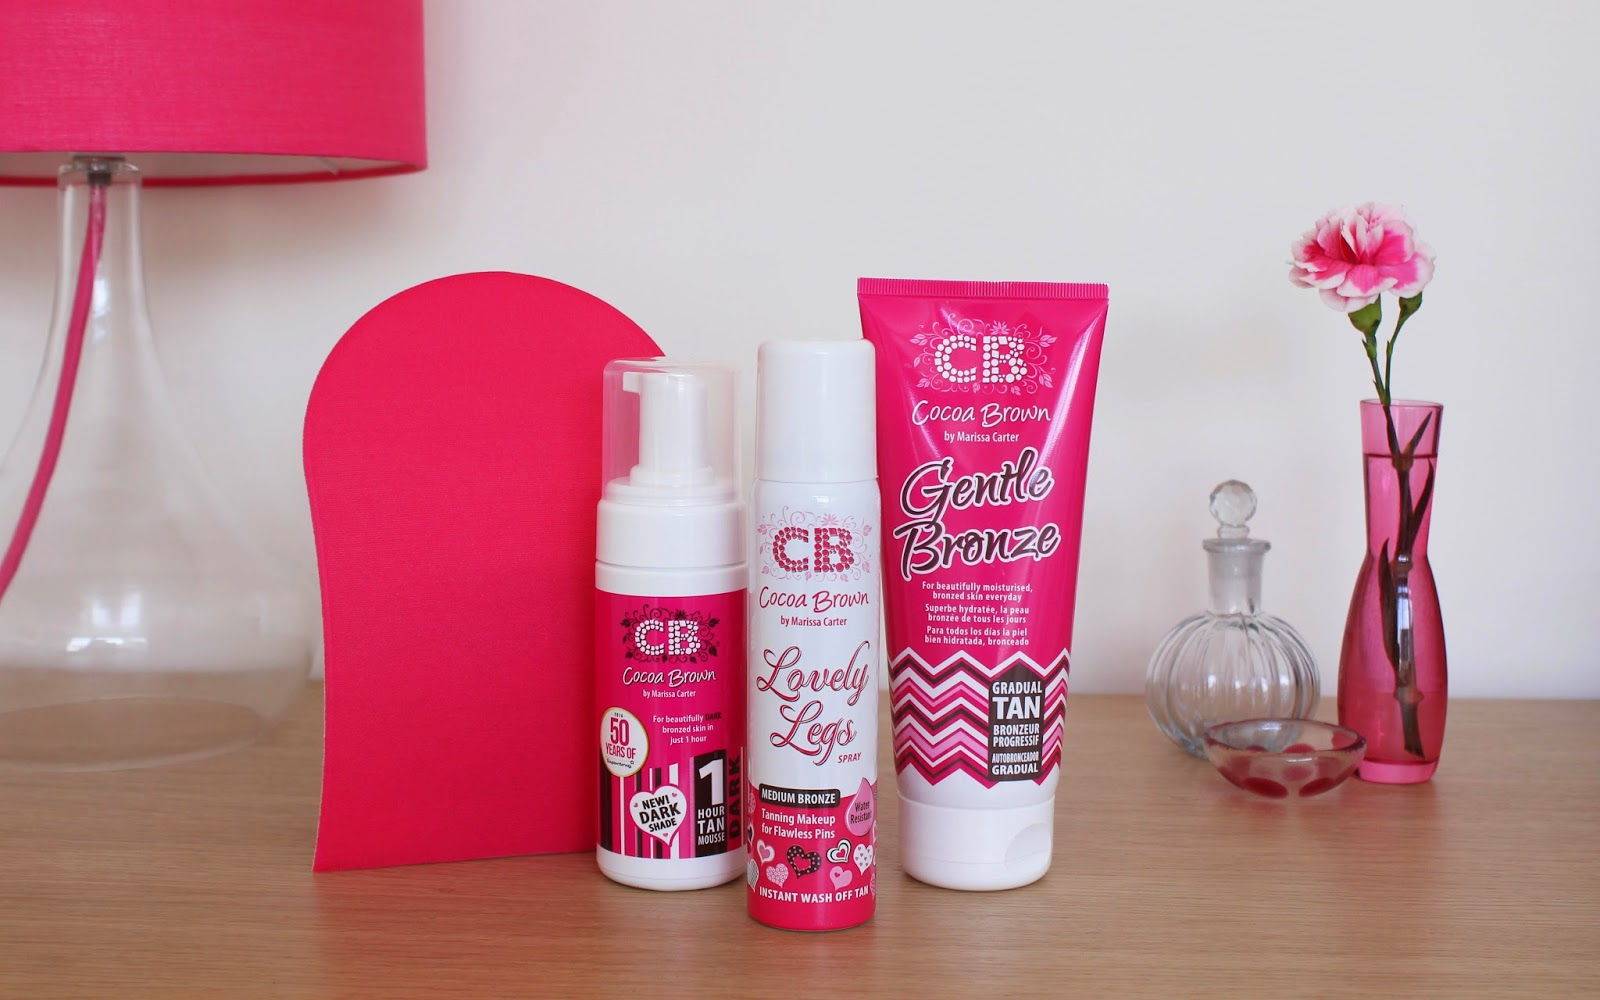 Cocoa Brown 1 Hour Dark Tan, Gentle Bronze and Lovely Legs Review